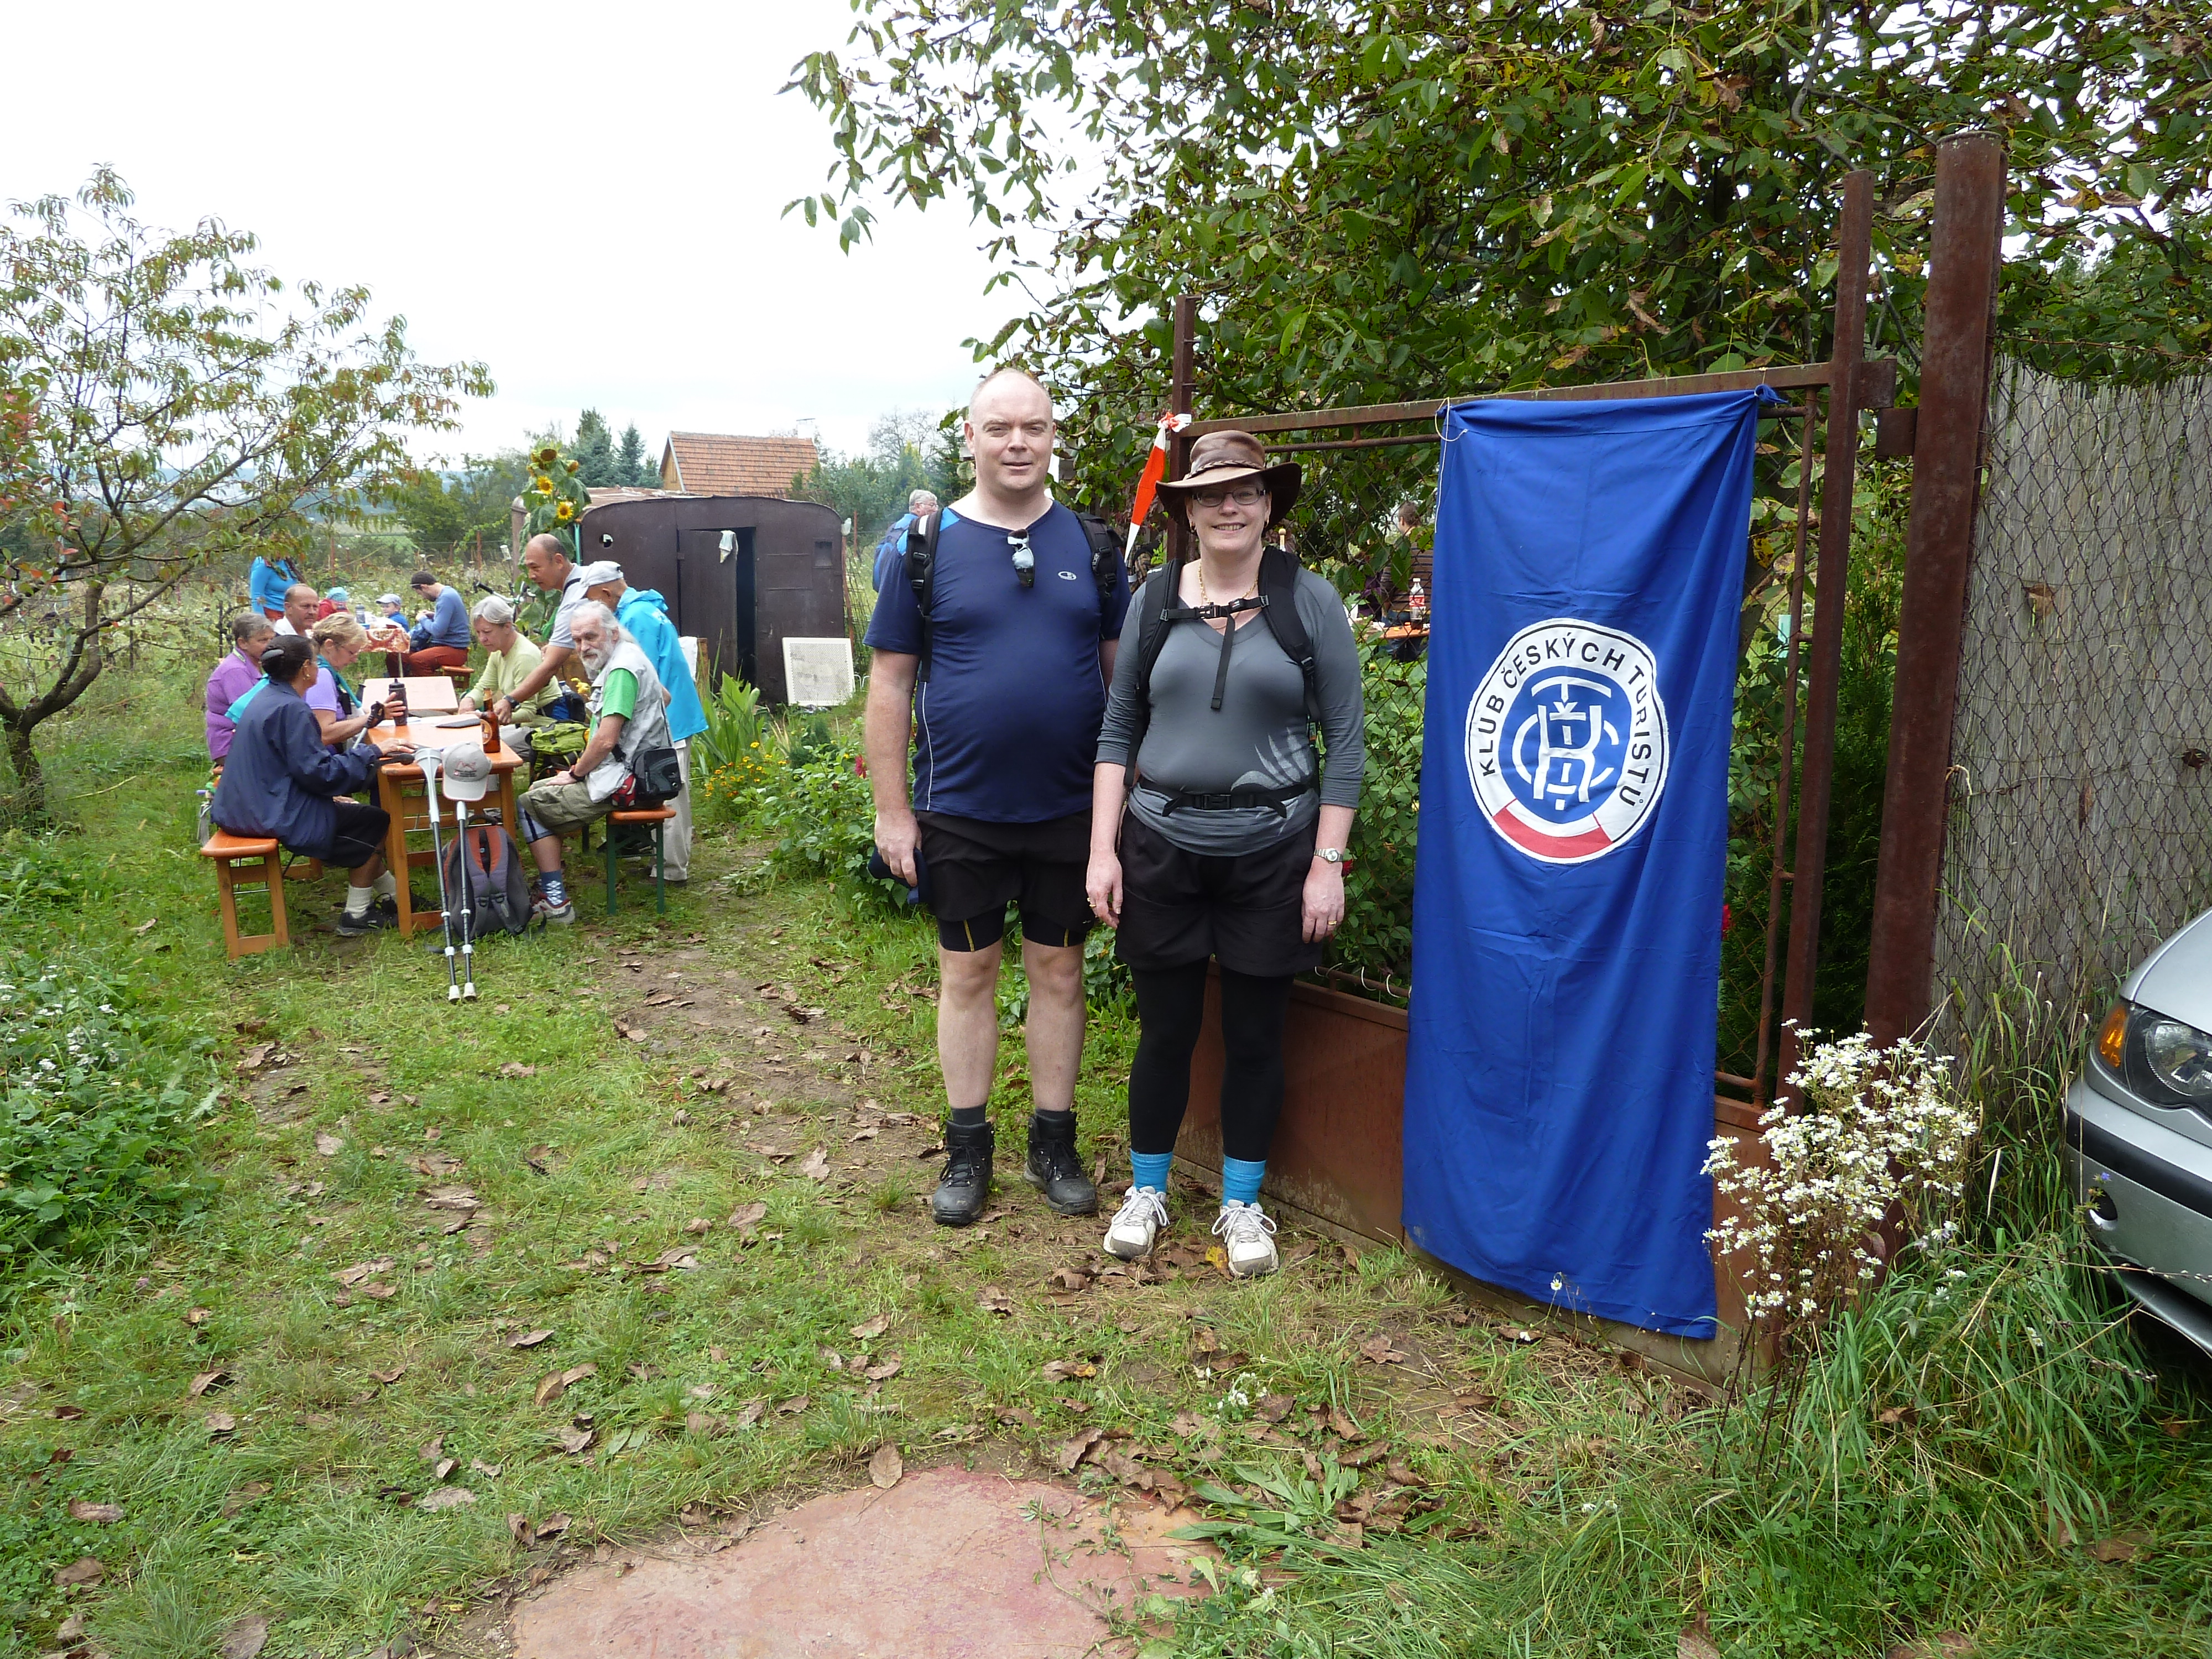 Man and woman standing near a blue banner in the Czech Republic.